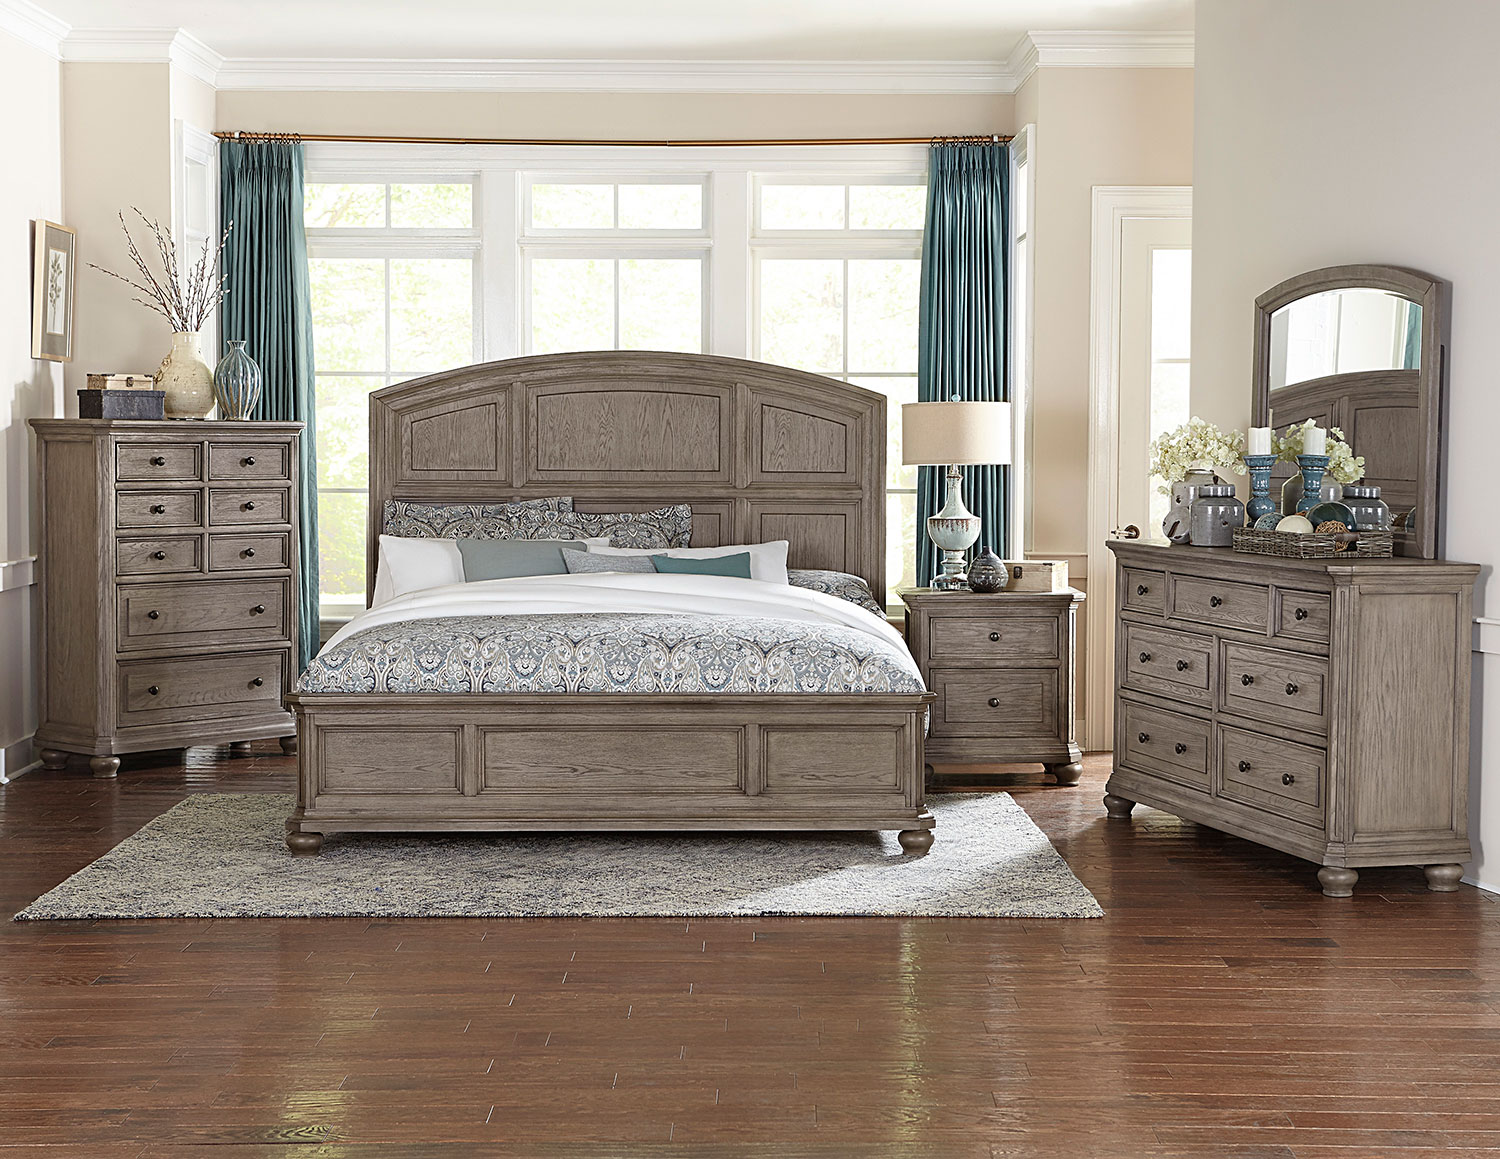 Homelegance Lavonia Low Profile Bedroom Set - Wire-brushed Gray